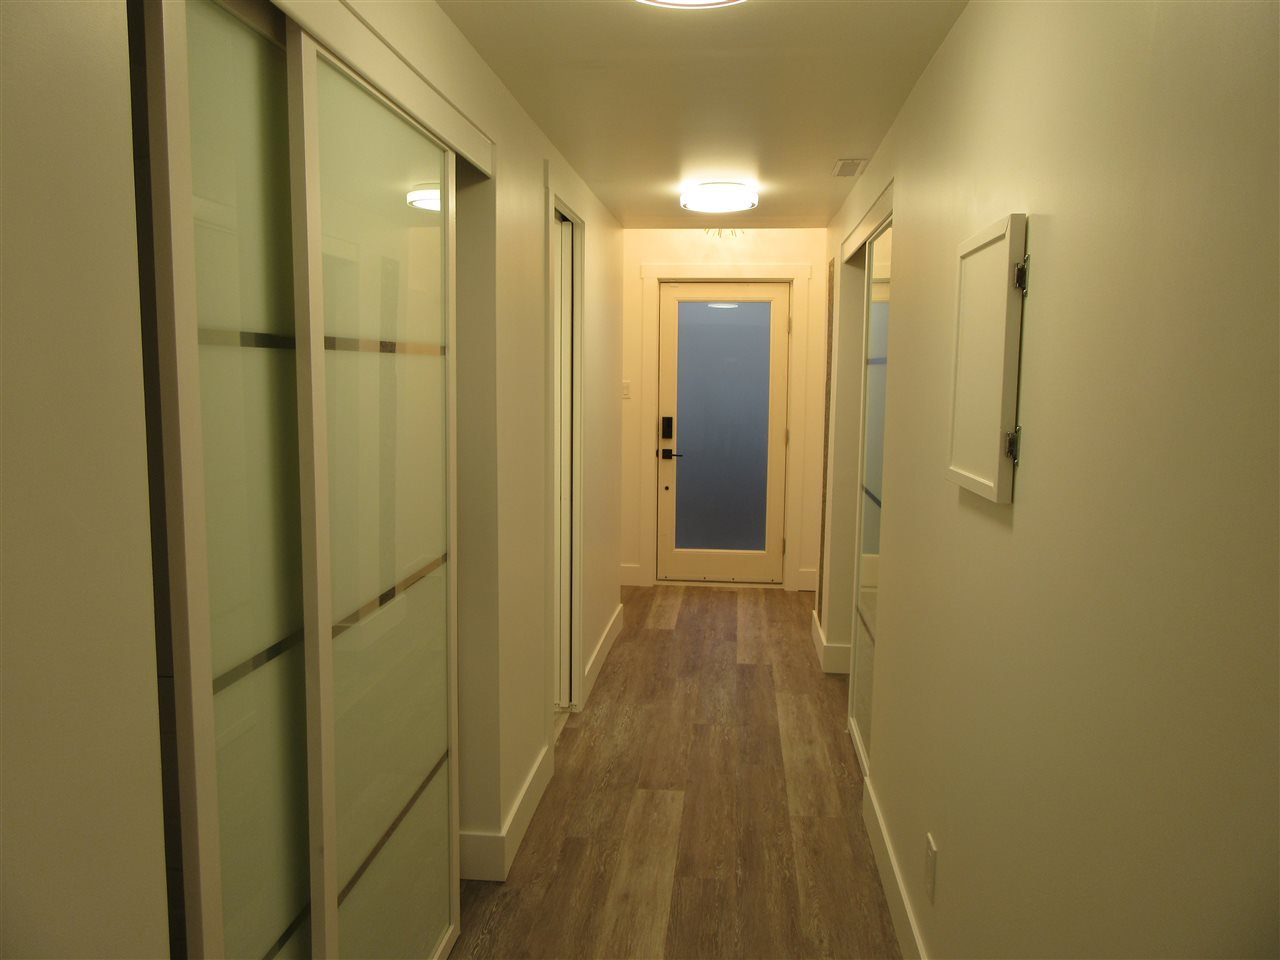 """Photo 12: Photos: 121 FREEMAN Street in Prince George: Nechako View House for sale in """"NECHAKO"""" (PG City Central (Zone 72))  : MLS®# R2493268"""